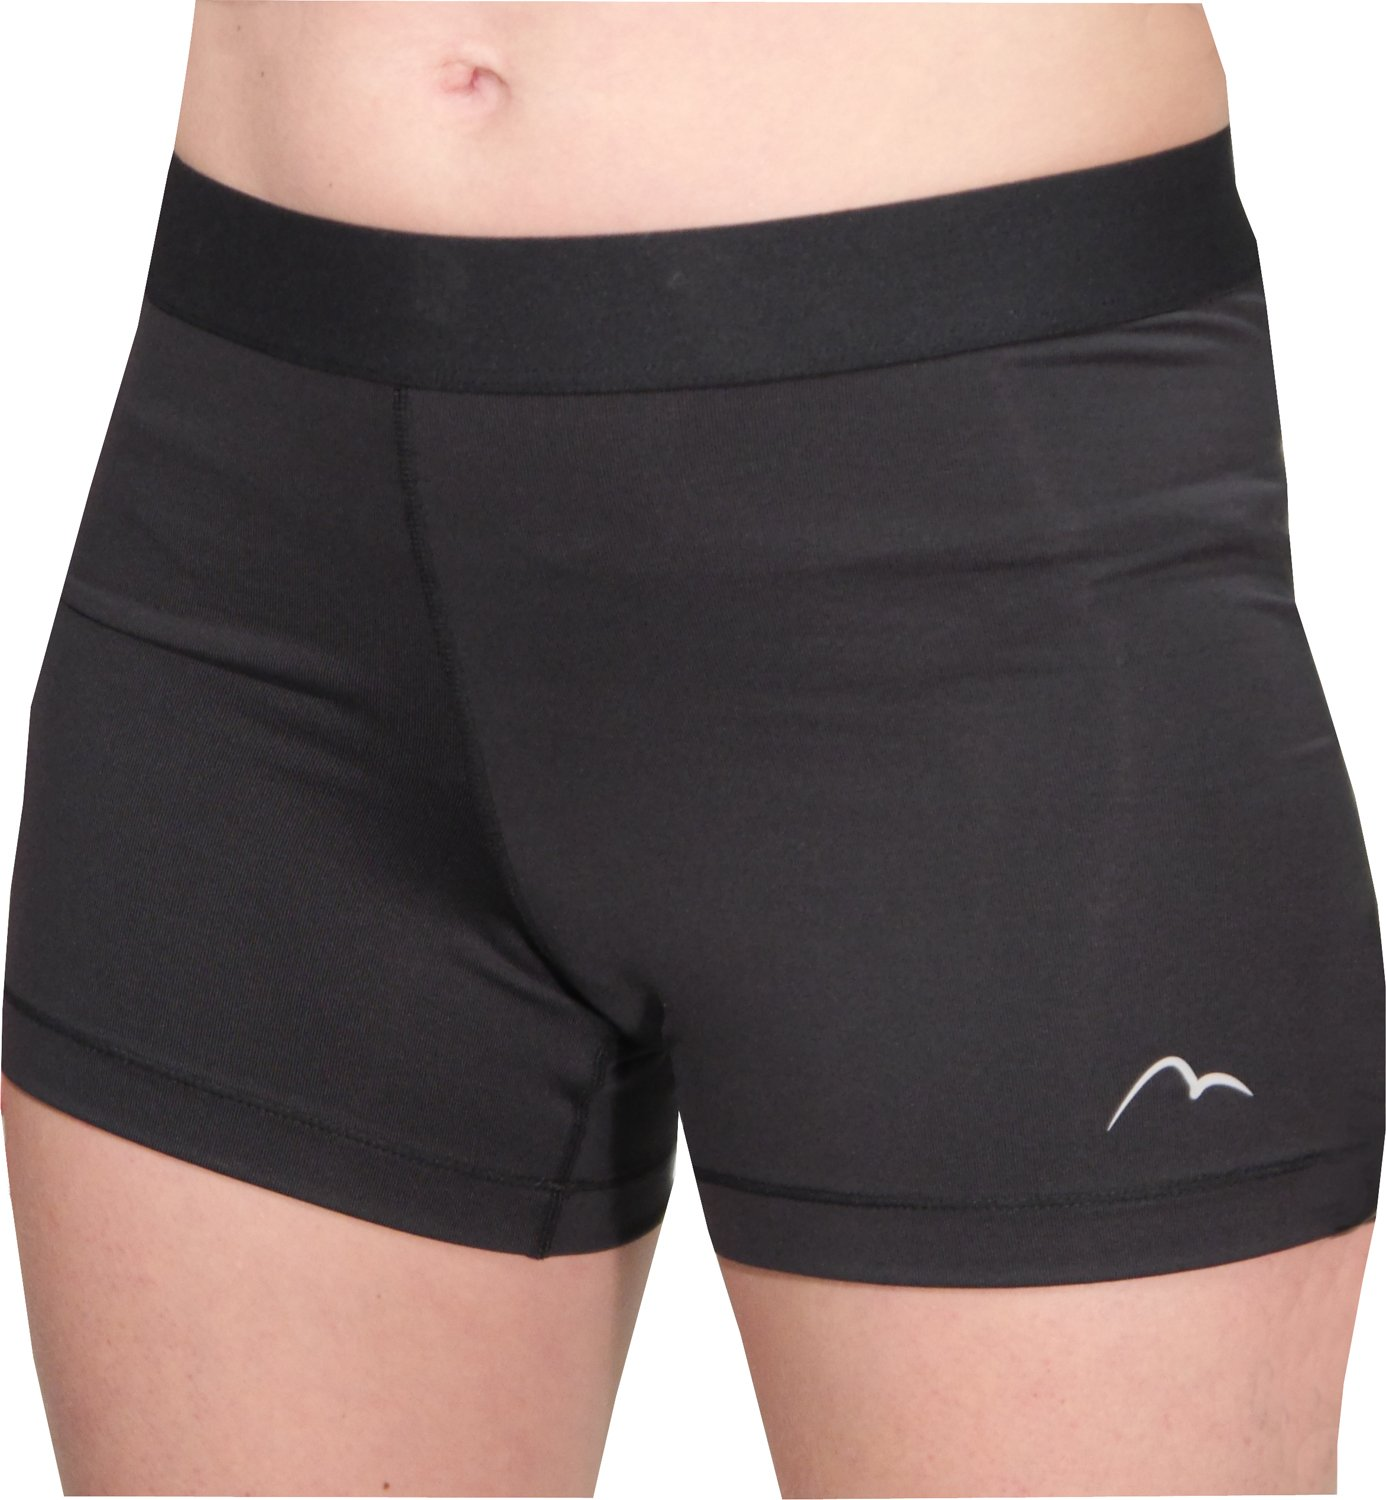 Black-XS More Mile 3 Inch Racer Boy Womens Running Shorts